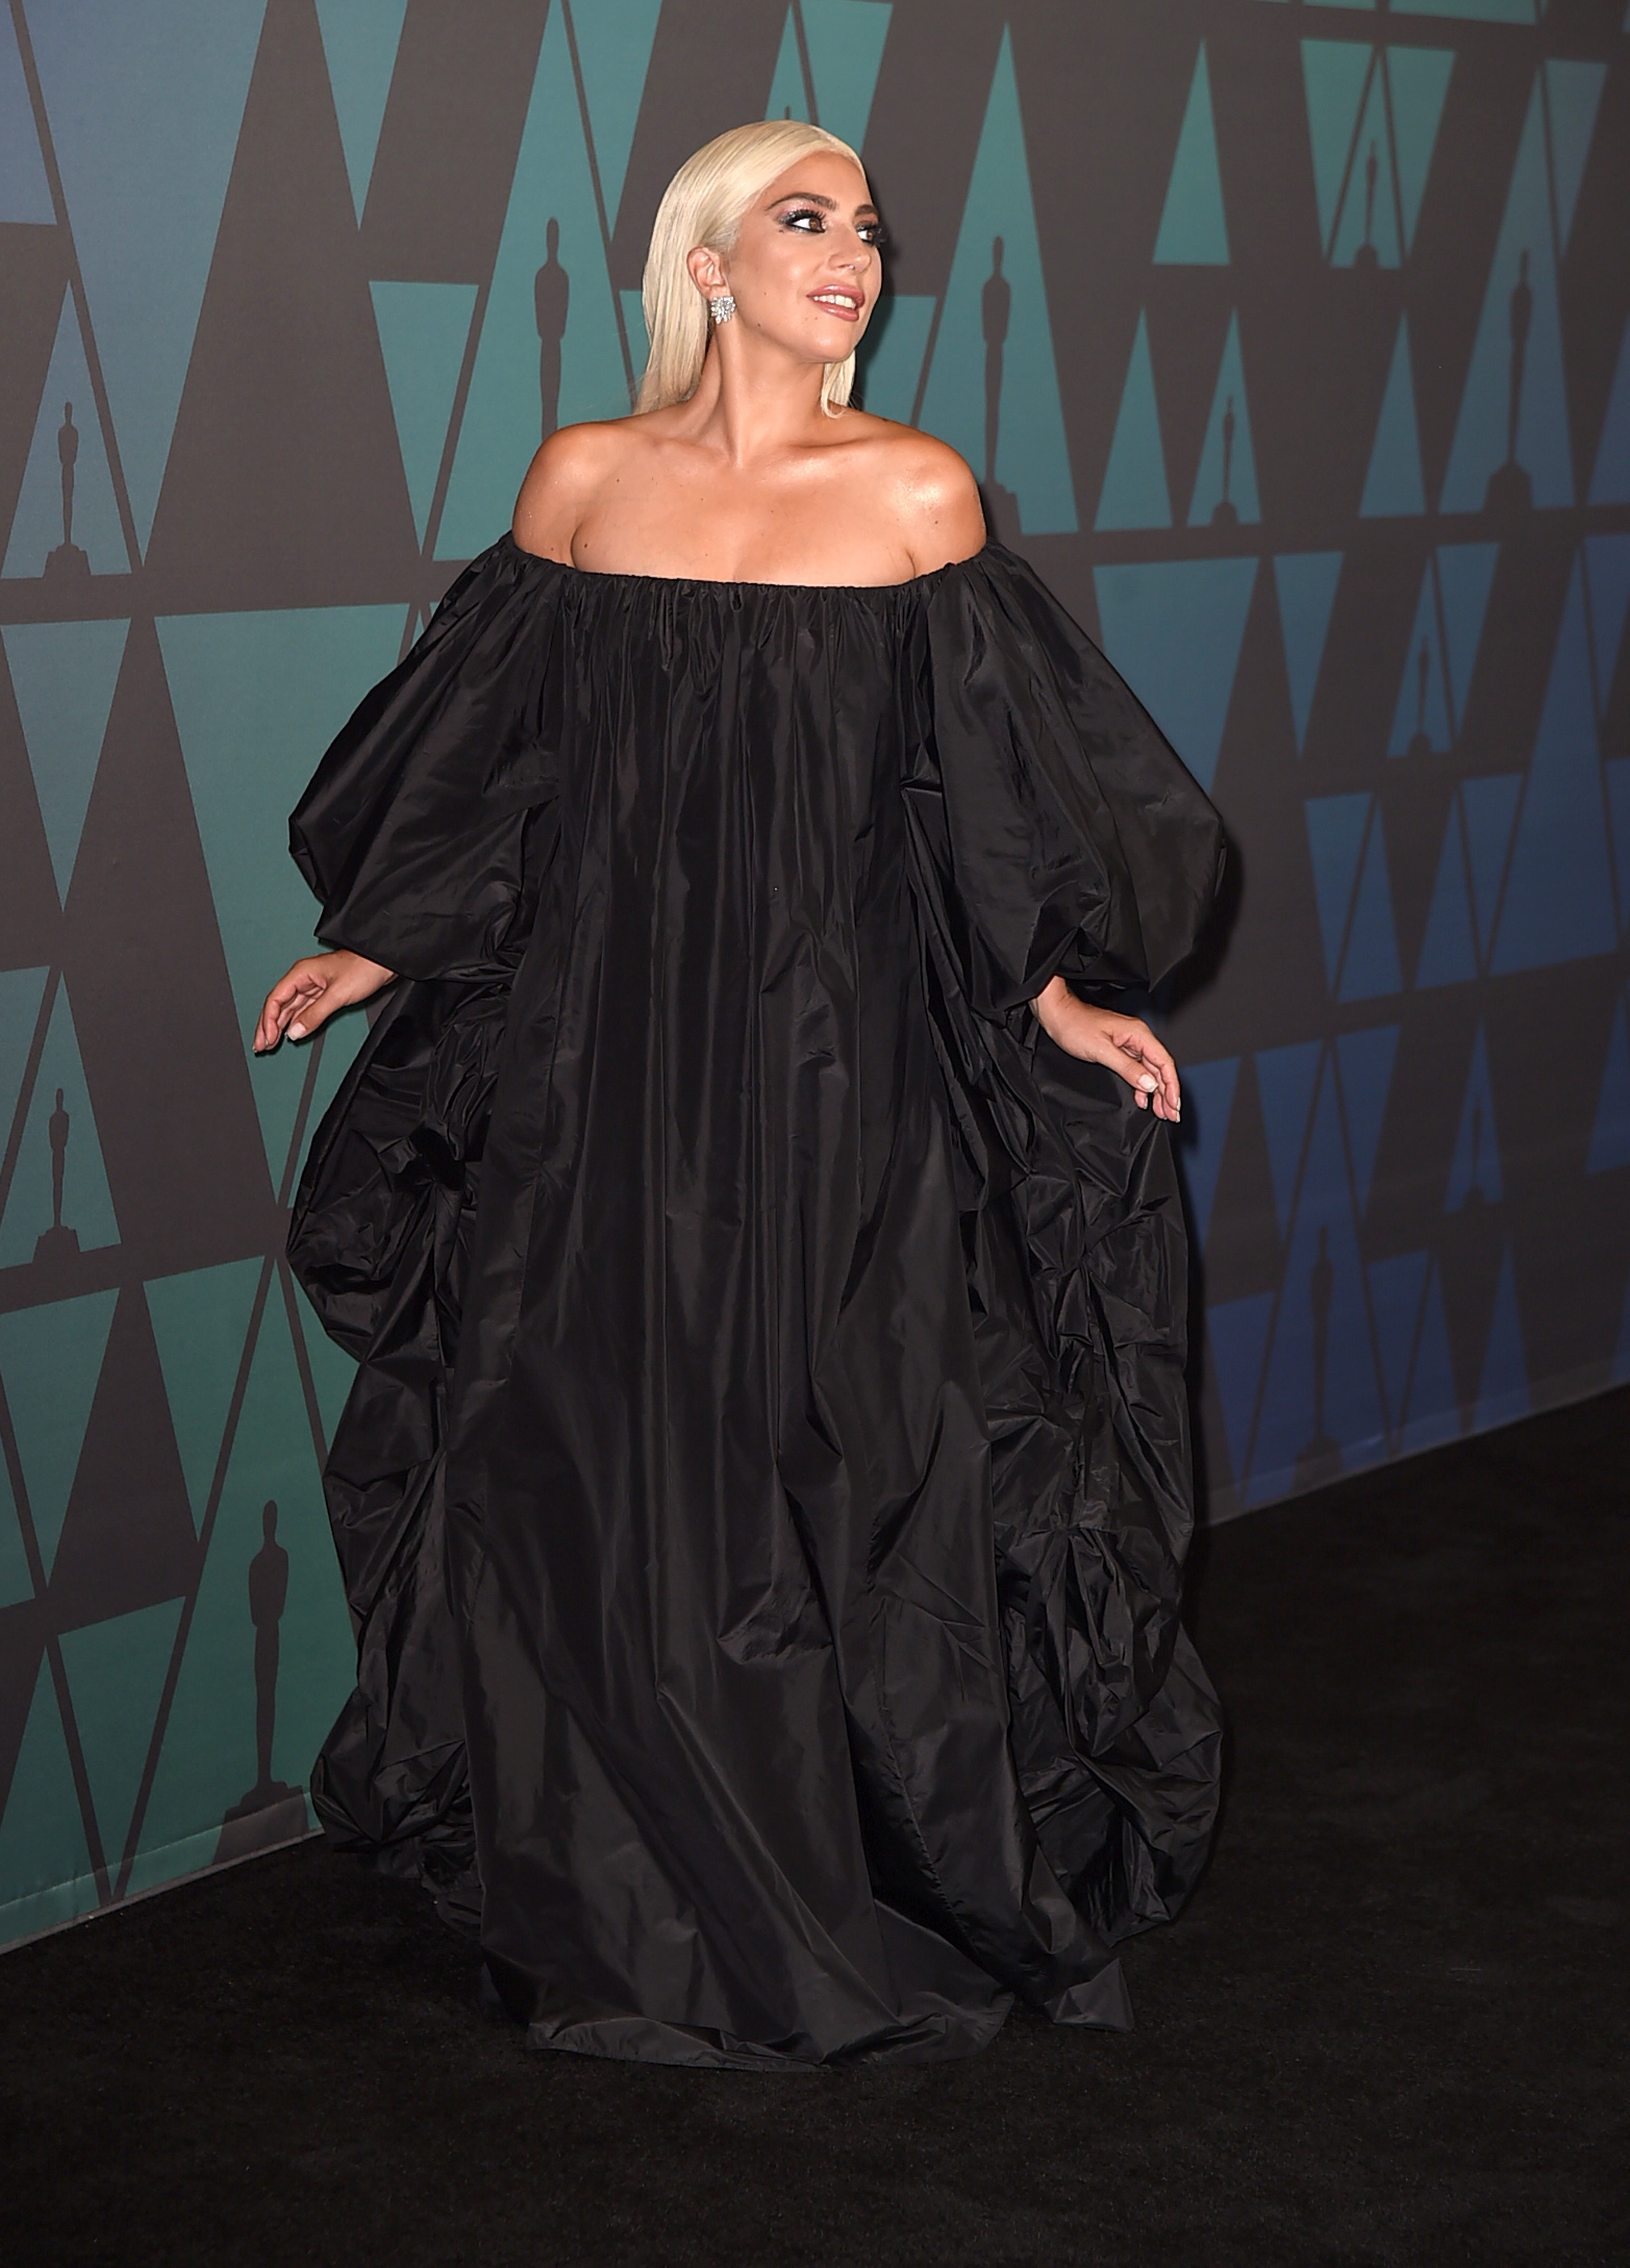 HOLLYWOOD, CA - NOVEMBER 18:  Lady Gaga attends the Academy of Motion Picture Arts and Sciences' 10th annual Governors Awards at The Ray Dolby Ballroom at Hollywood & Highland Center on November 18, 2018 in Hollywood, California.  (Photo by Kevin Winter/Getty Images)